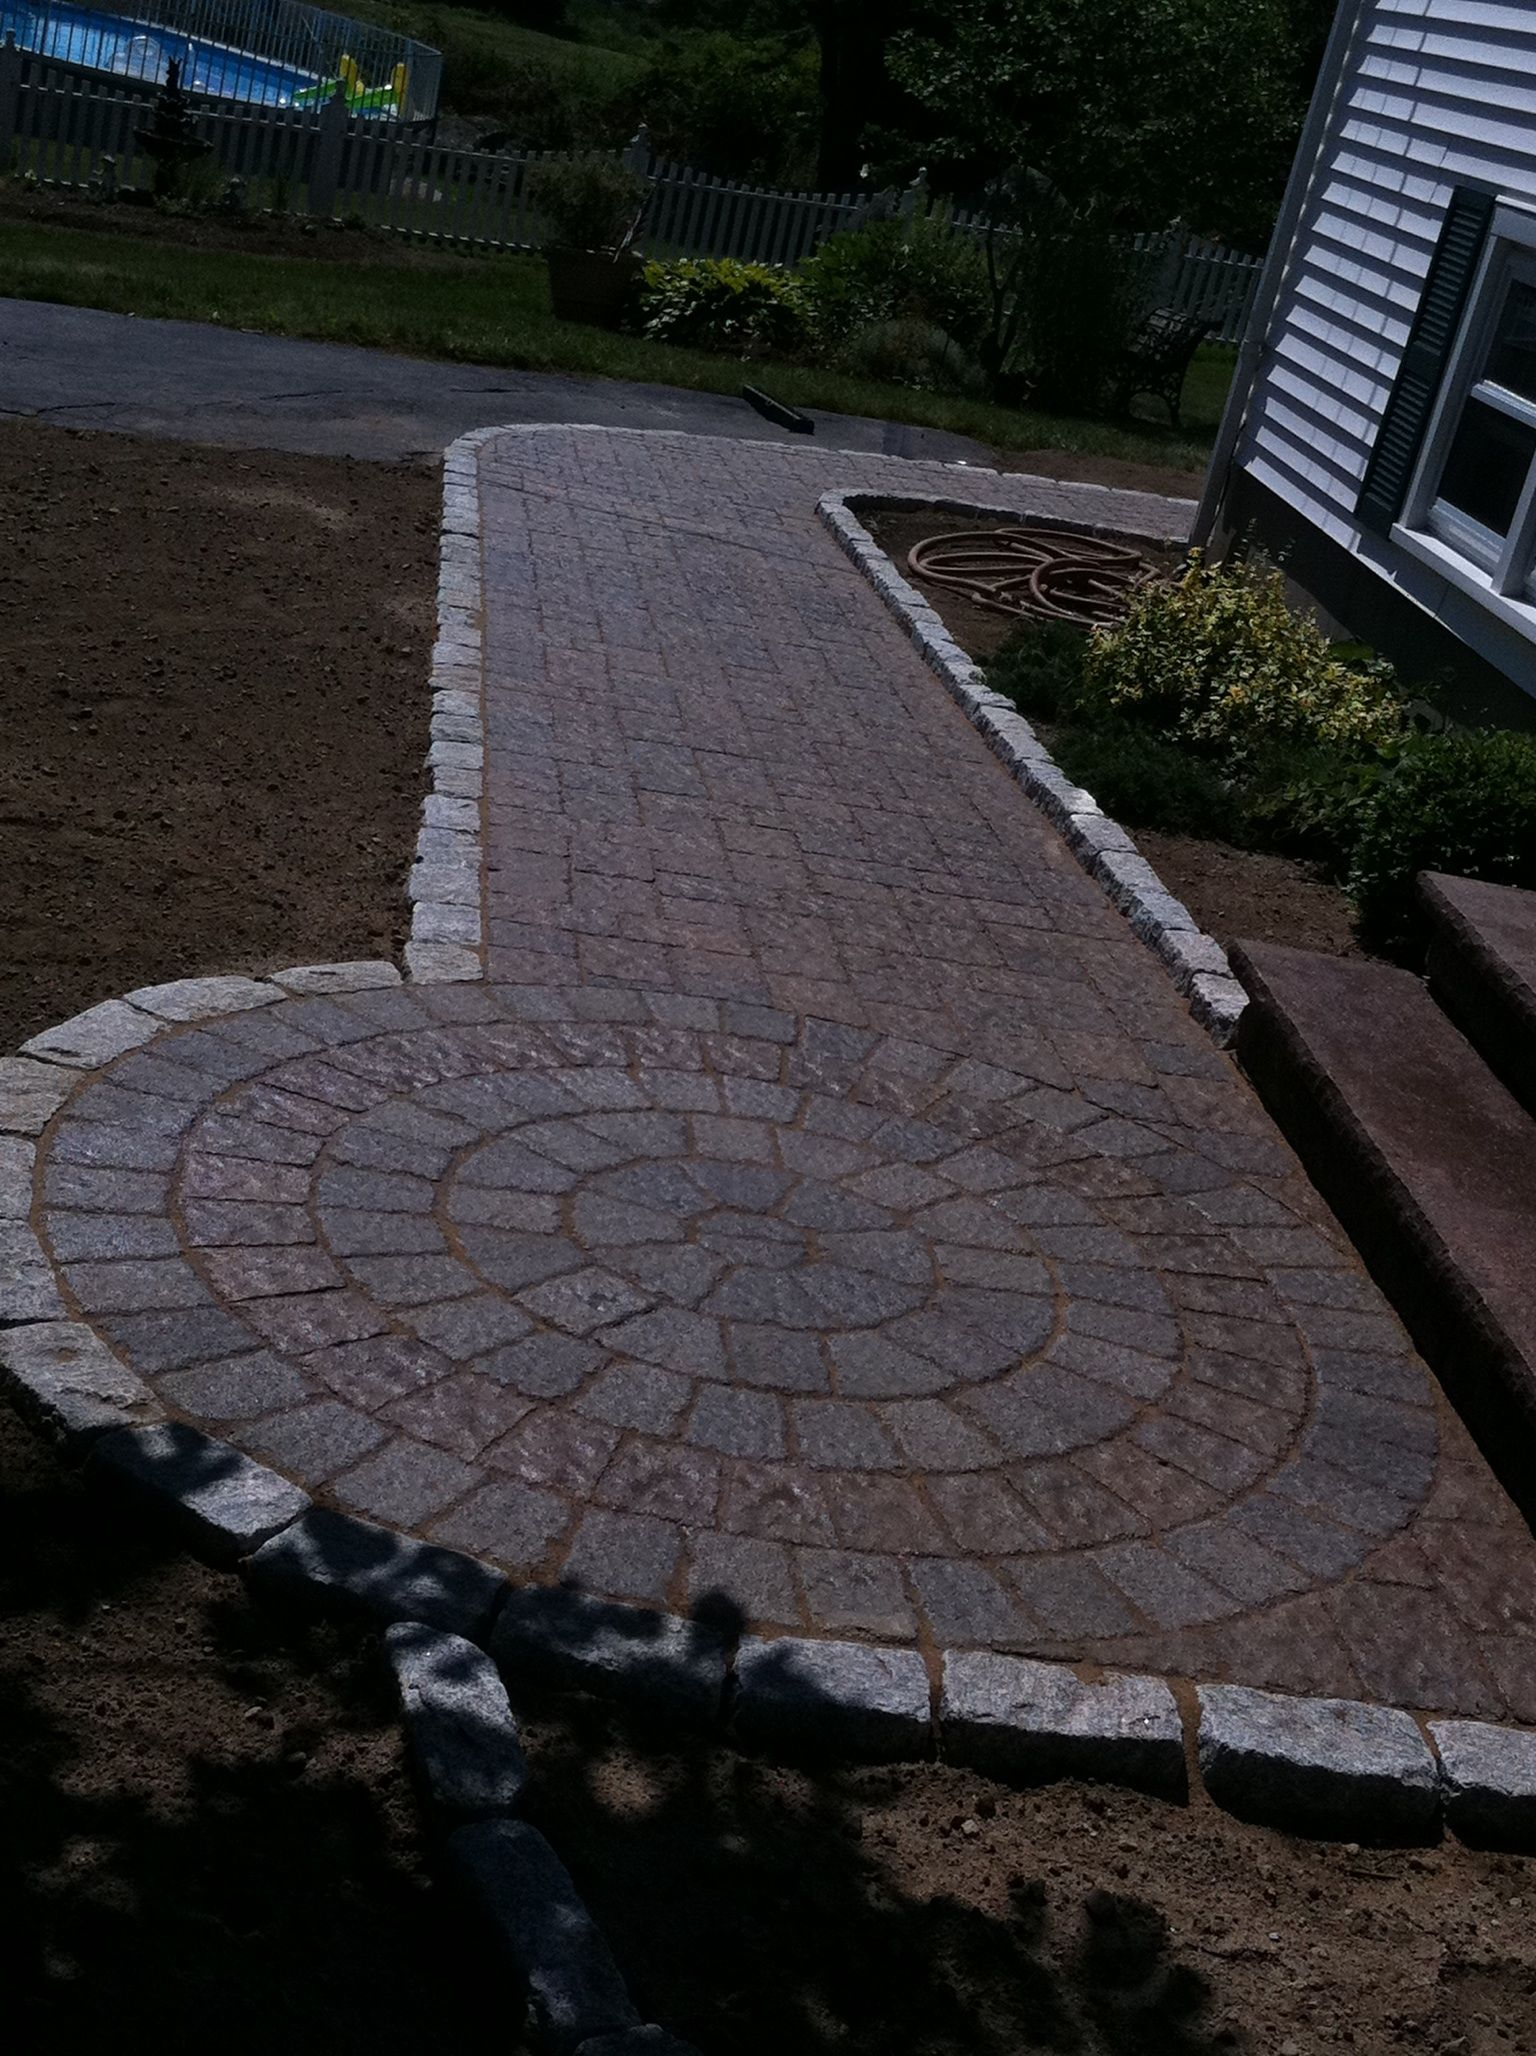 Paver Walkway W Circle With Cobble Stone Edging By Araujo LandscapingInc